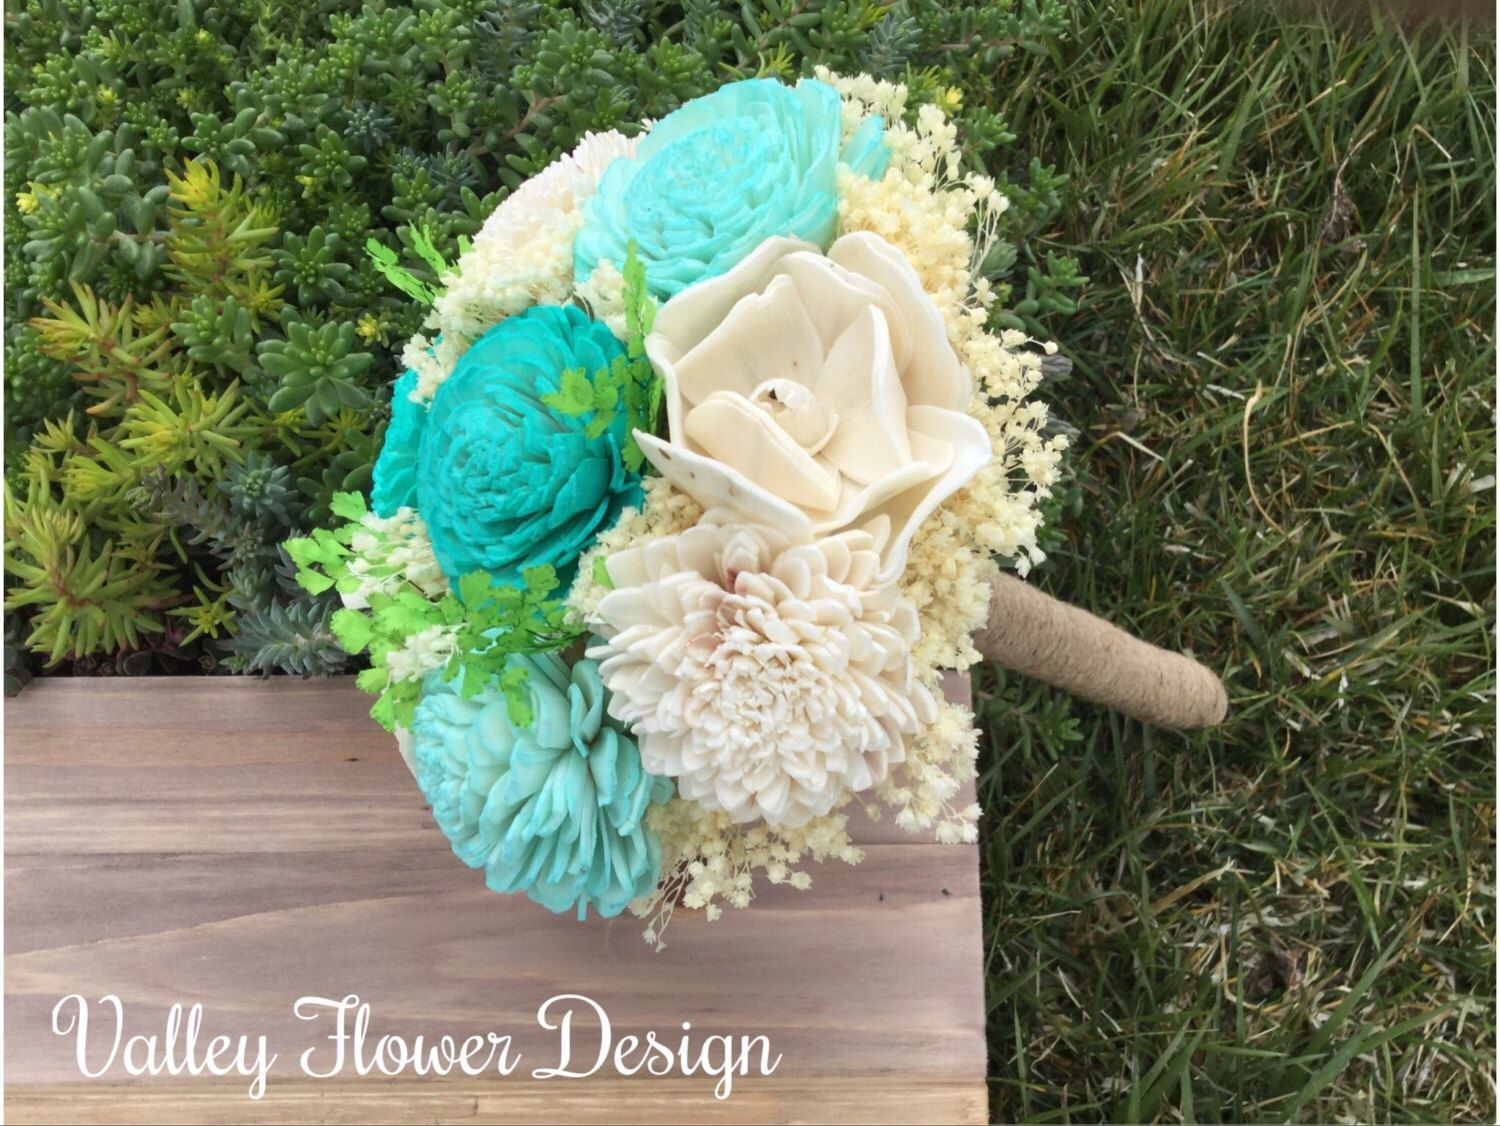 Ready to Ship - Small sola flower bouquet, Wedding bouquet, Alternative bouquet by Valleyflowerdesign on Etsy https://www.etsy.com/listing/290774995/ready-to-ship-small-sola-flower-bouquet